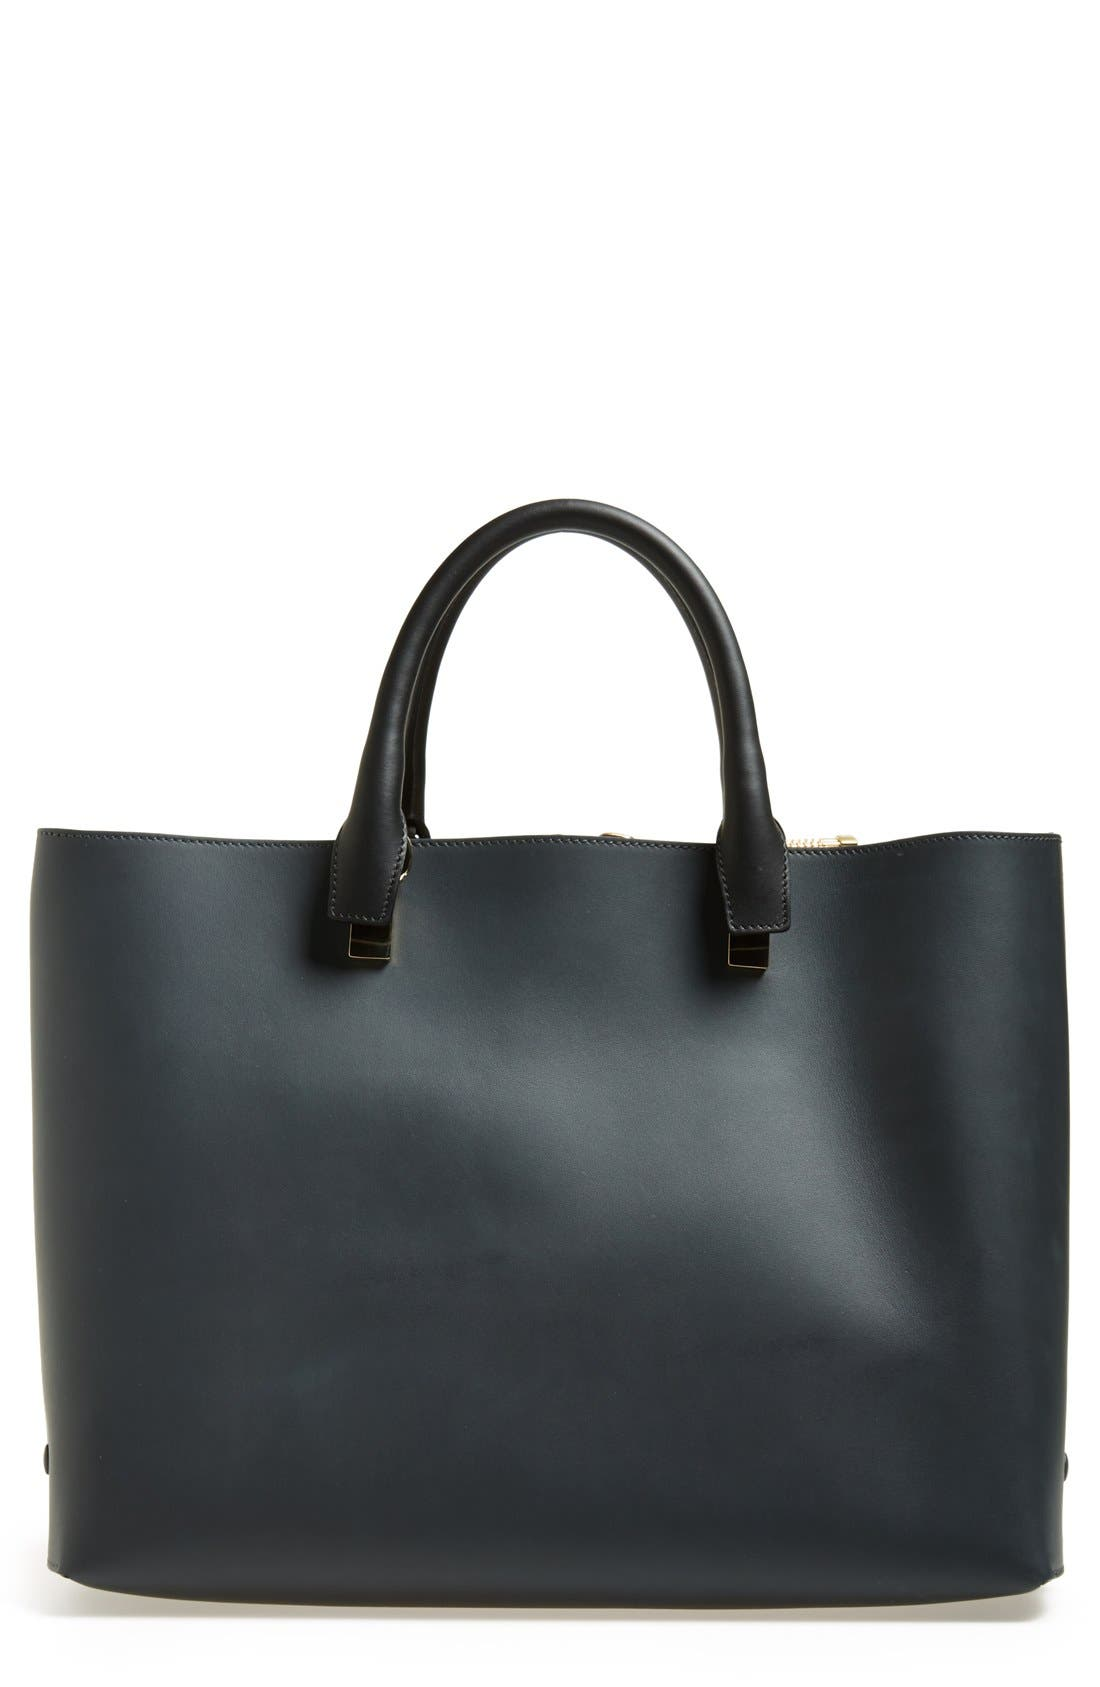 Main Image - Chloé 'Baylee - Medium' Leather Tote